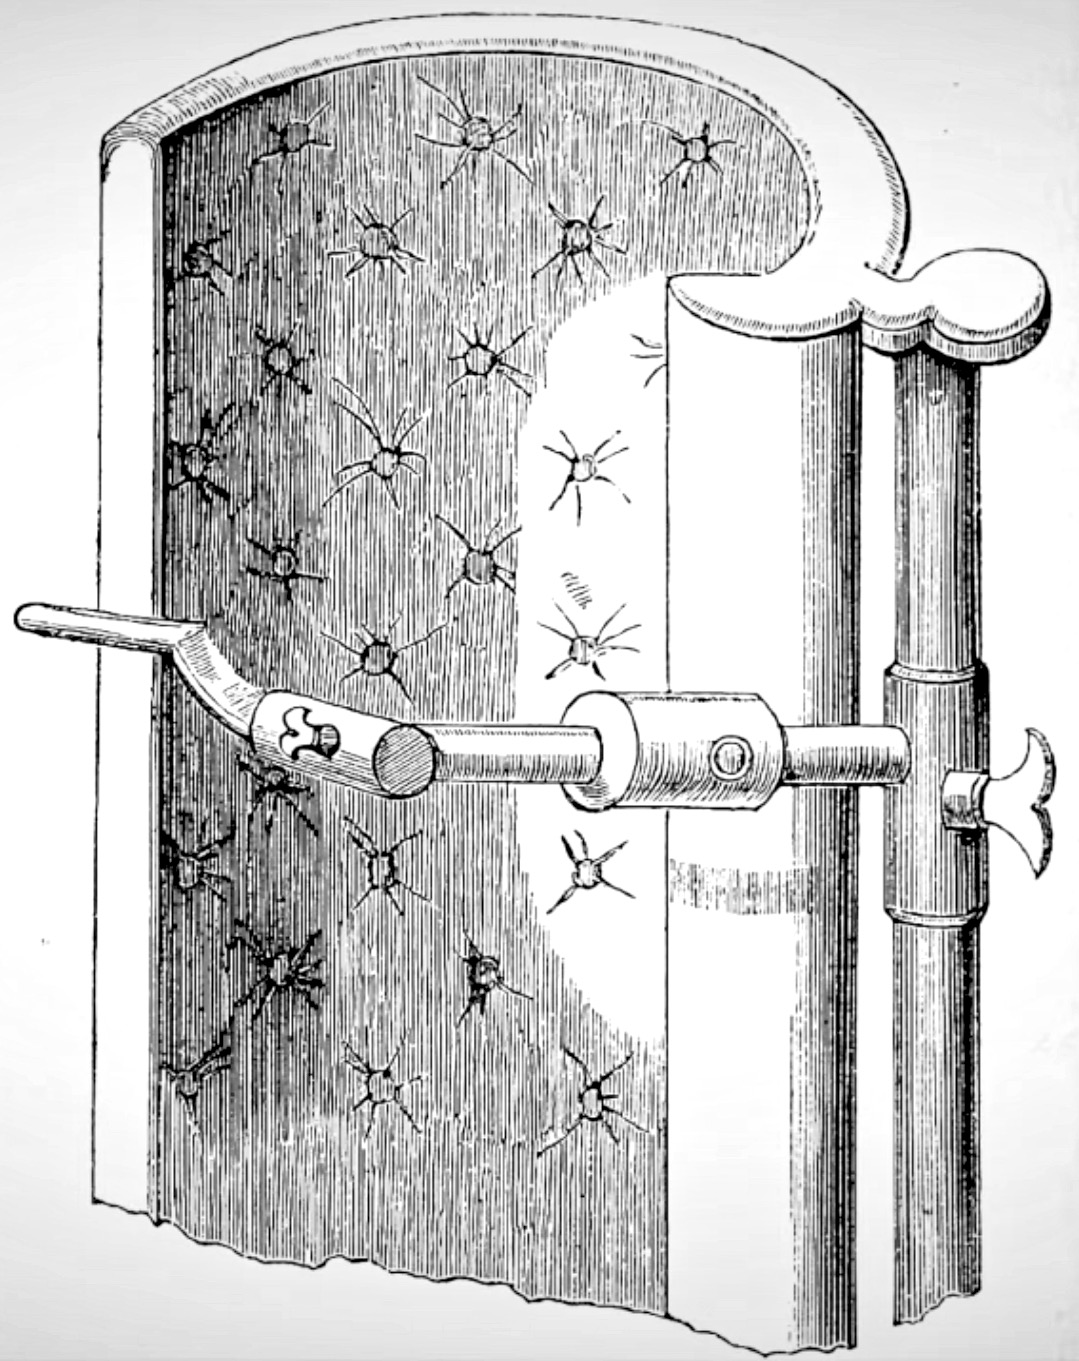 Gilbert's Tooth Extractor shown at the Great Exhibition in 1851